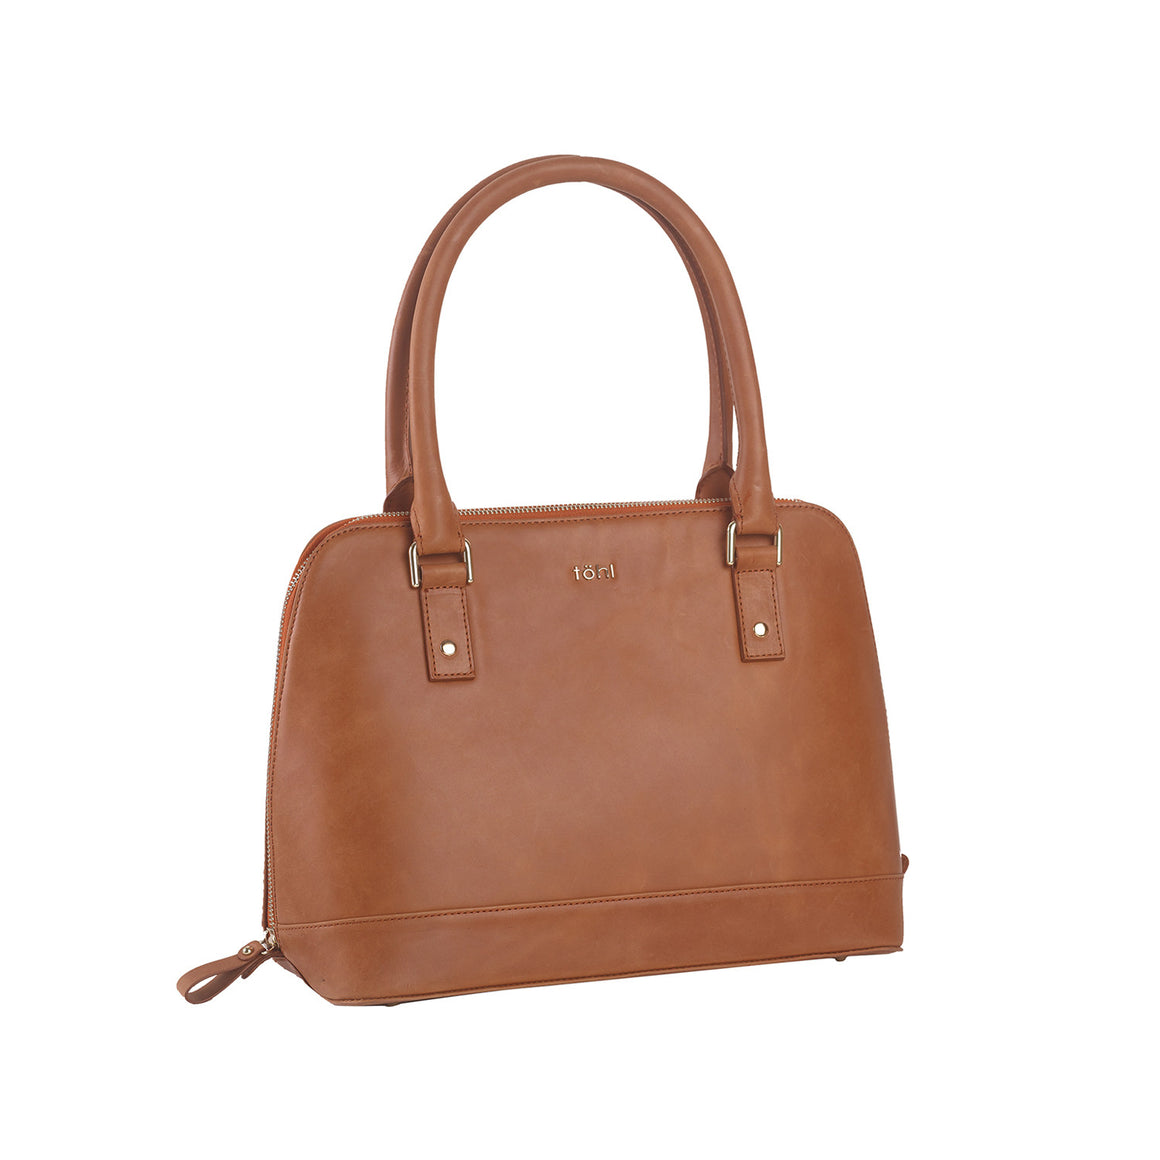 TT 0002 - TOHL RIDGE WOMEN'S SHOULDER BAG - TAN